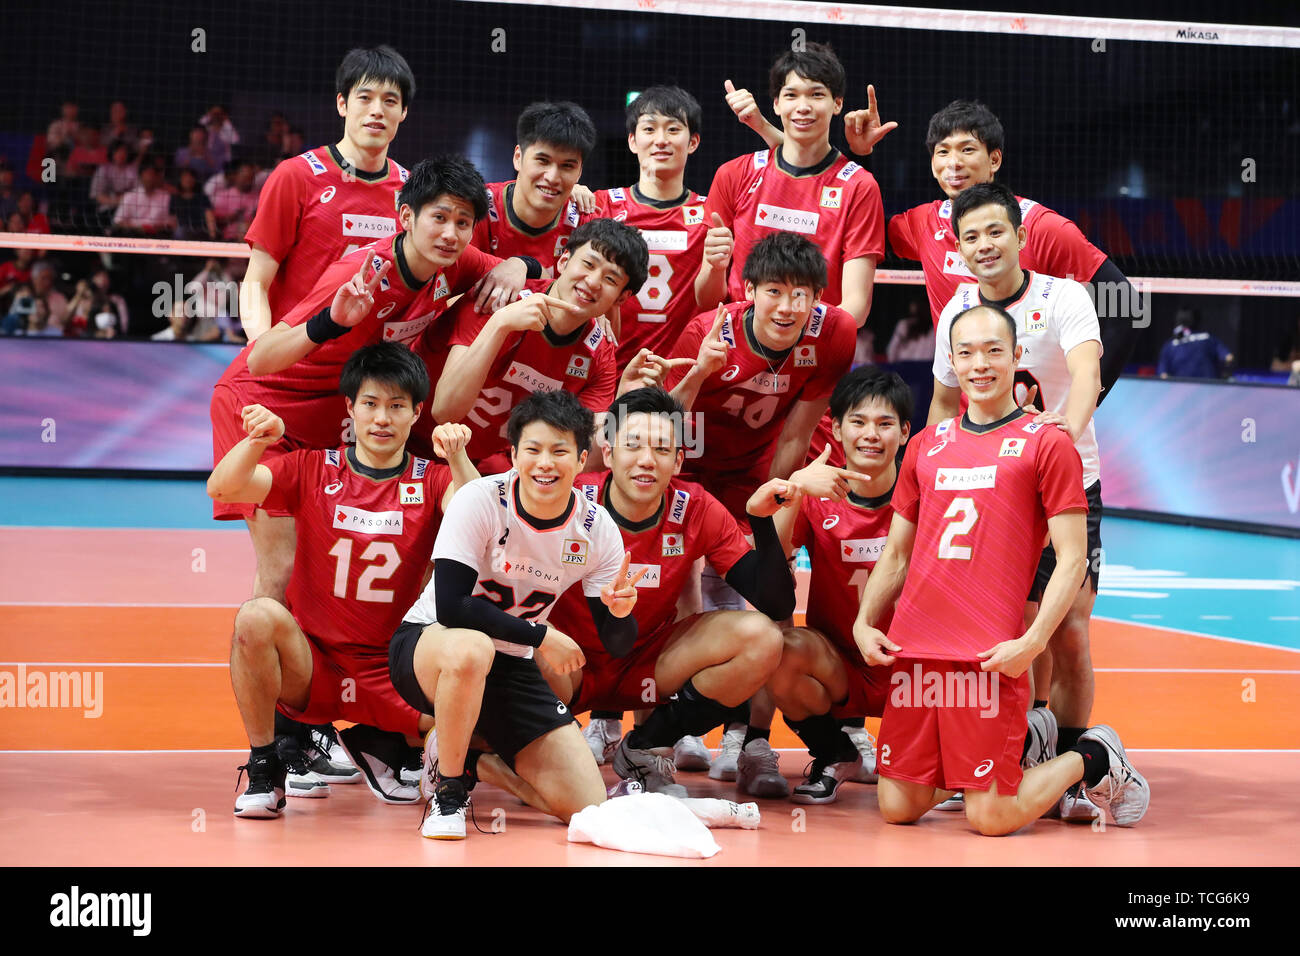 Volleyball Japan National Team Group High Resolution Stock Photography And Images Alamy